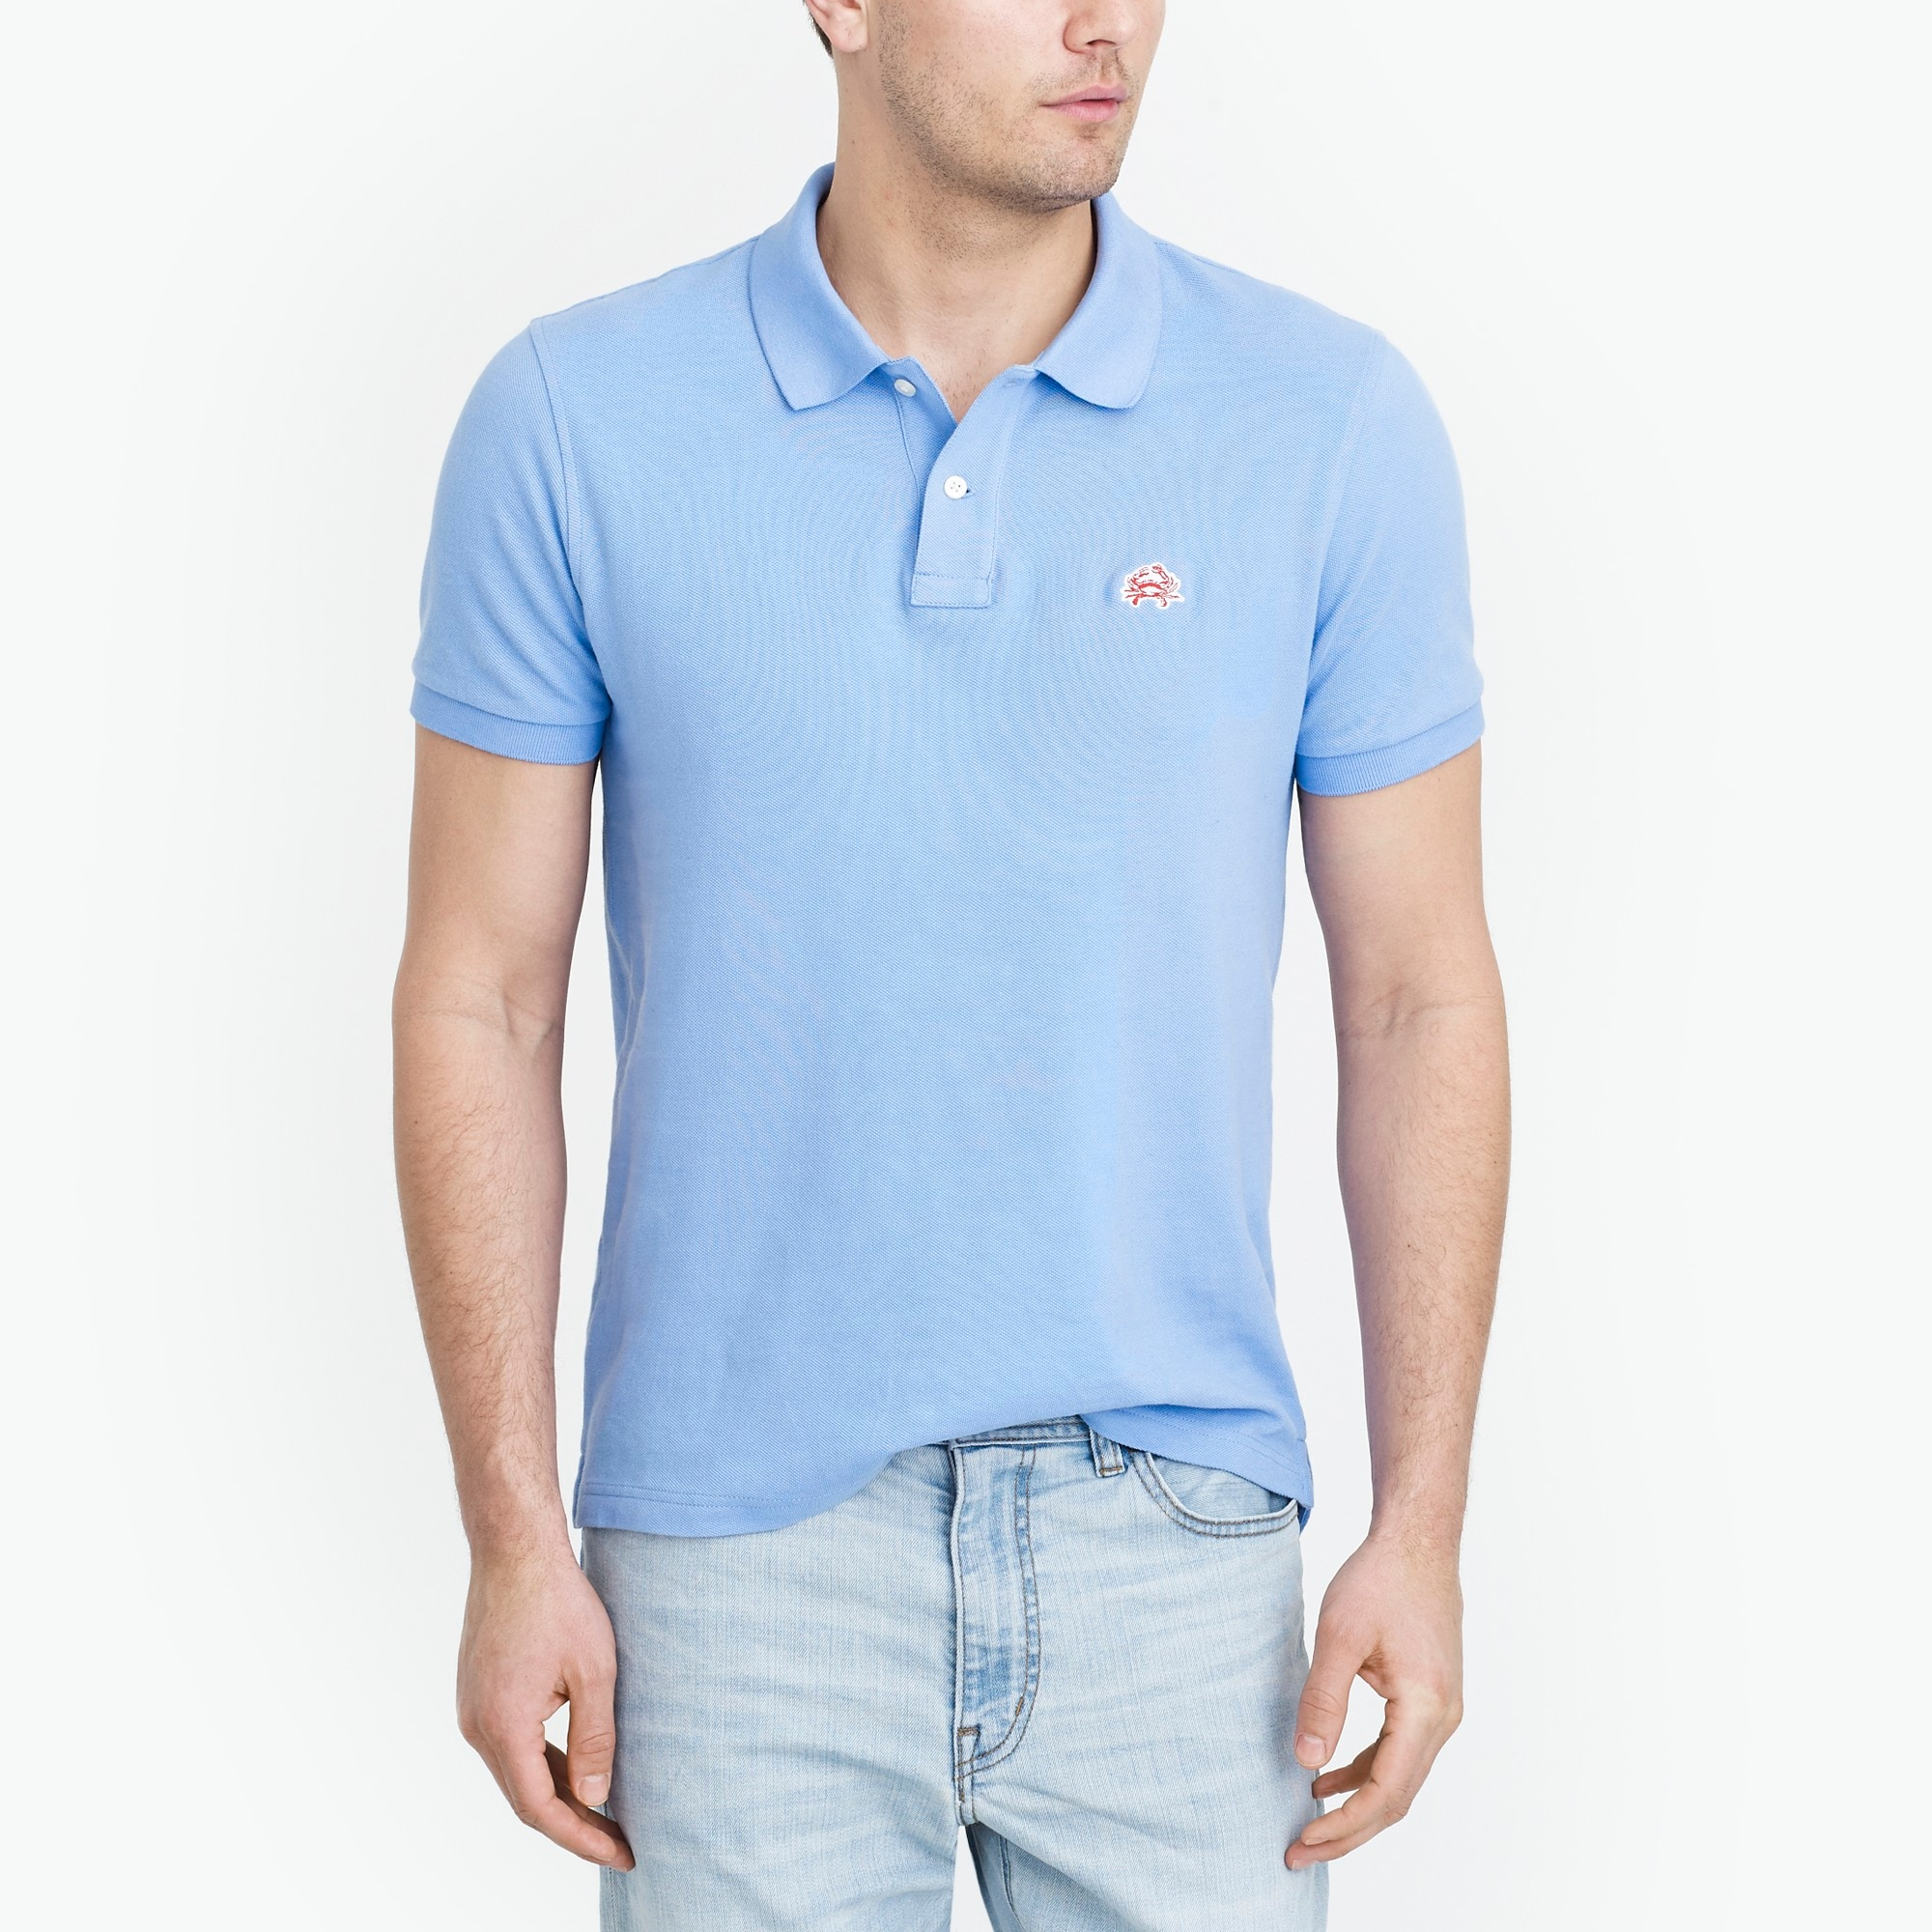 embroidered logo piqué polo shirt : factorymen polos